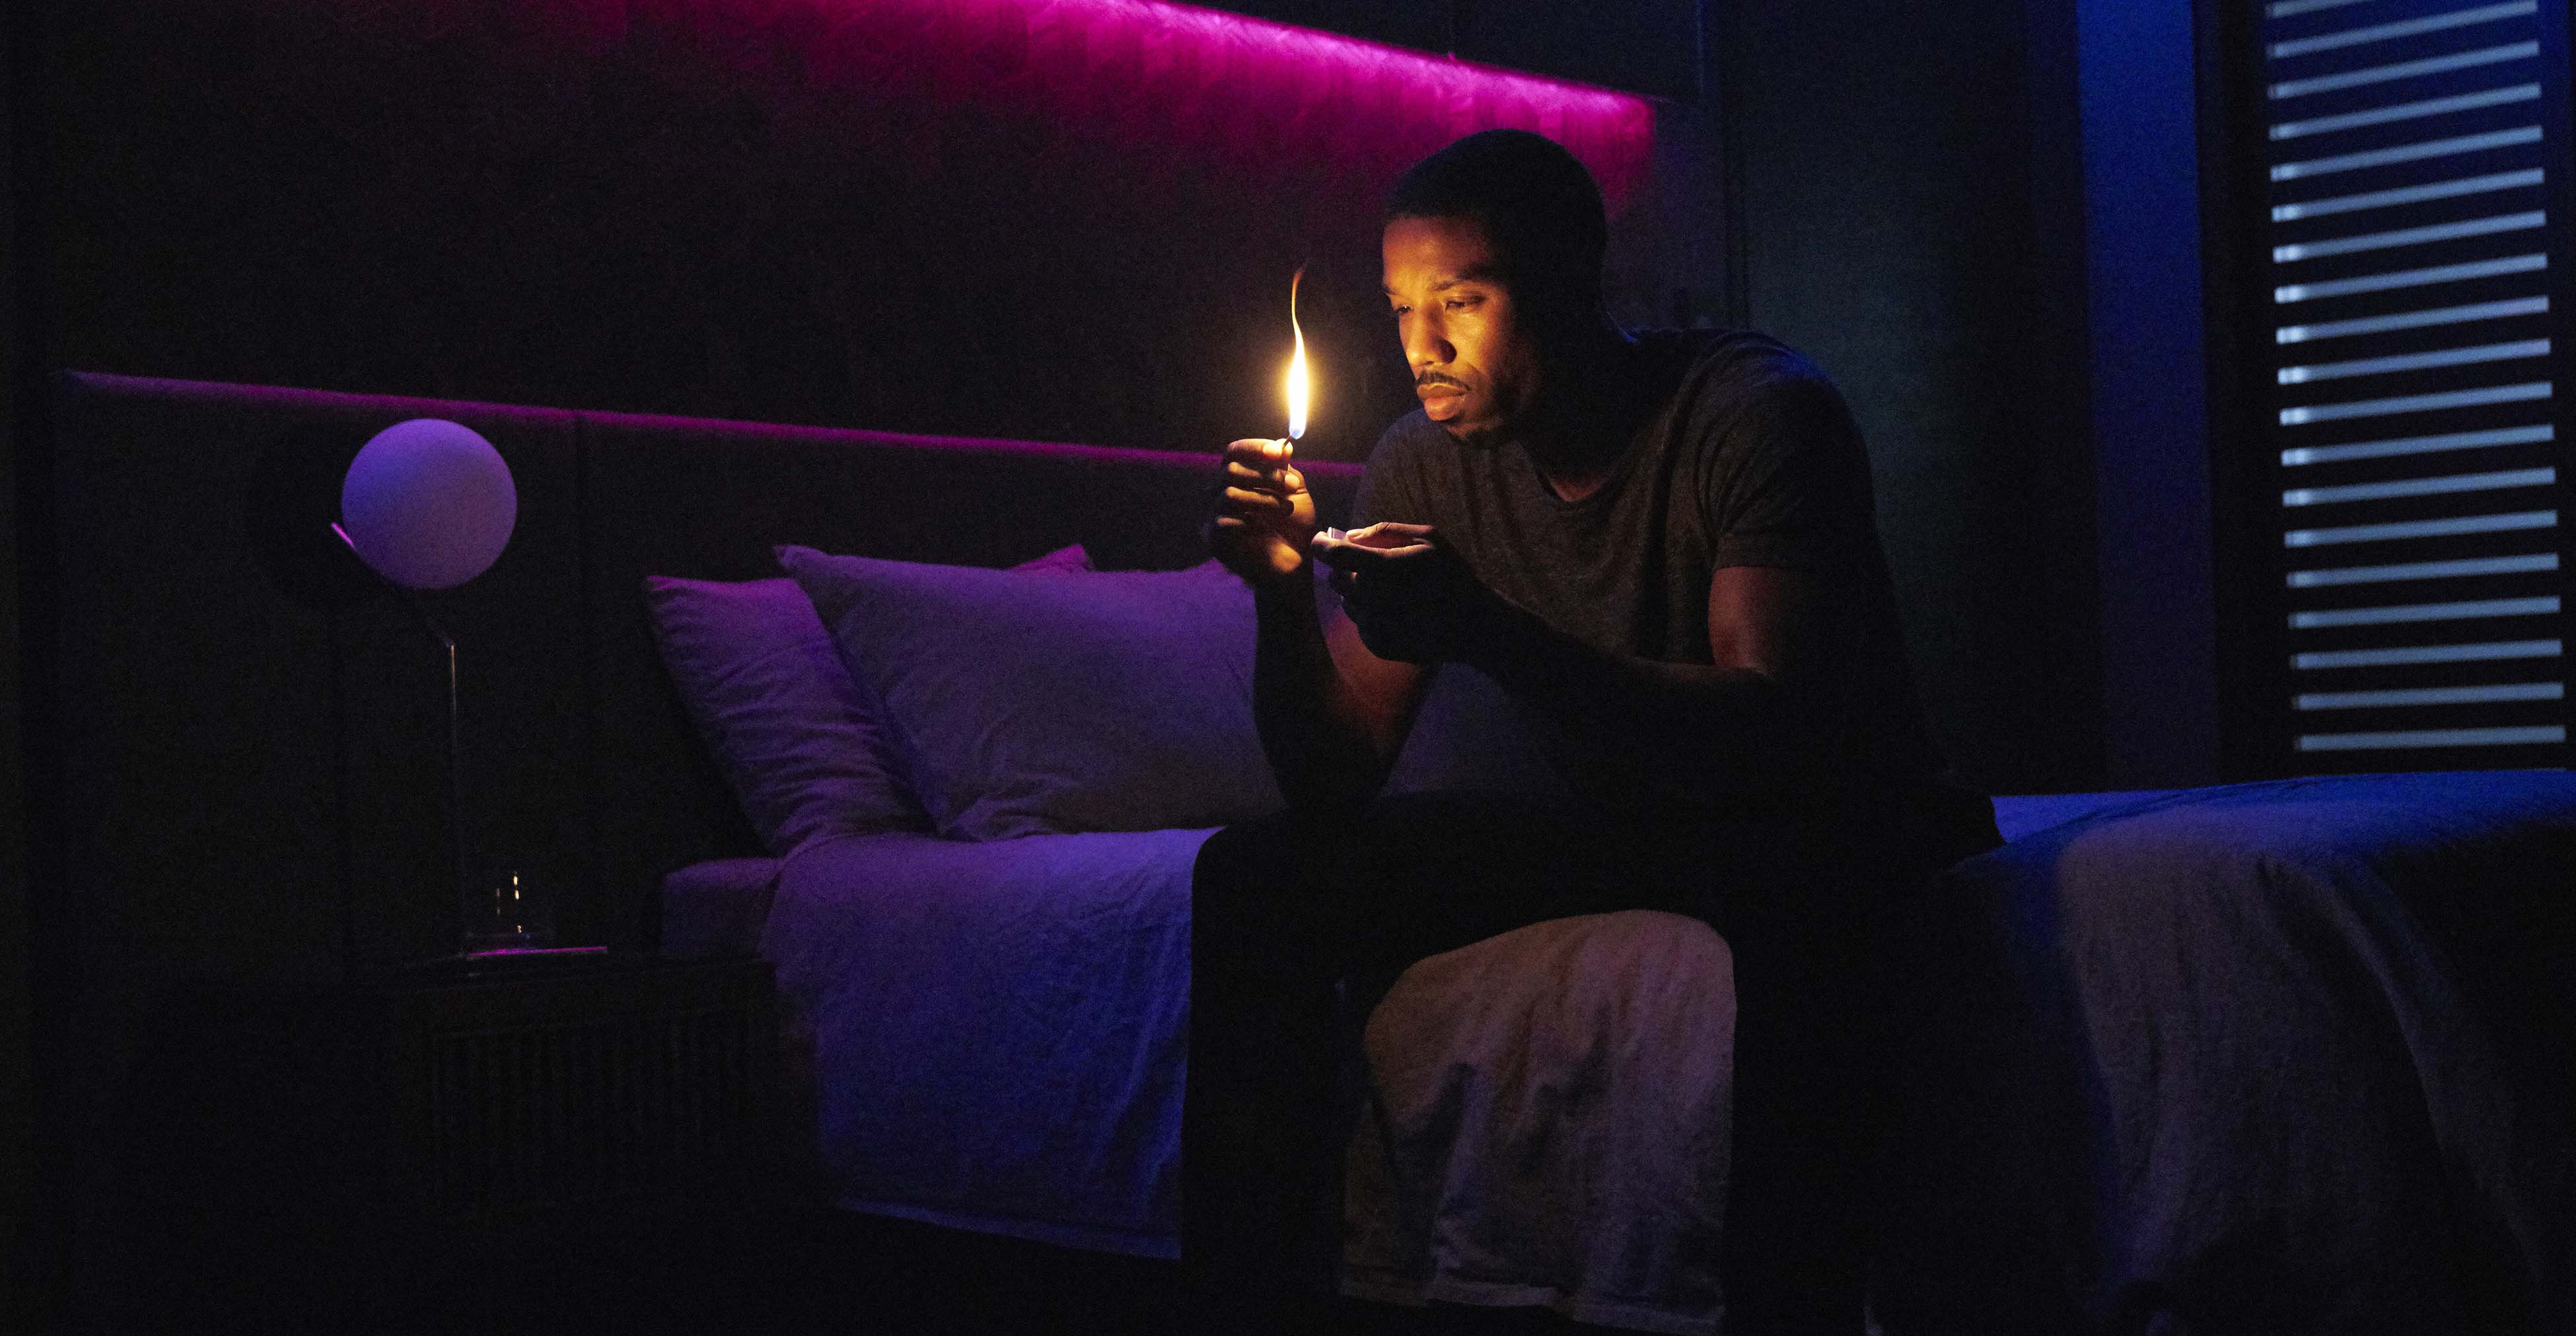 Burn it! Checa el nuevo teaser de 'Fahrenheit 451' con Michael B. Jordan